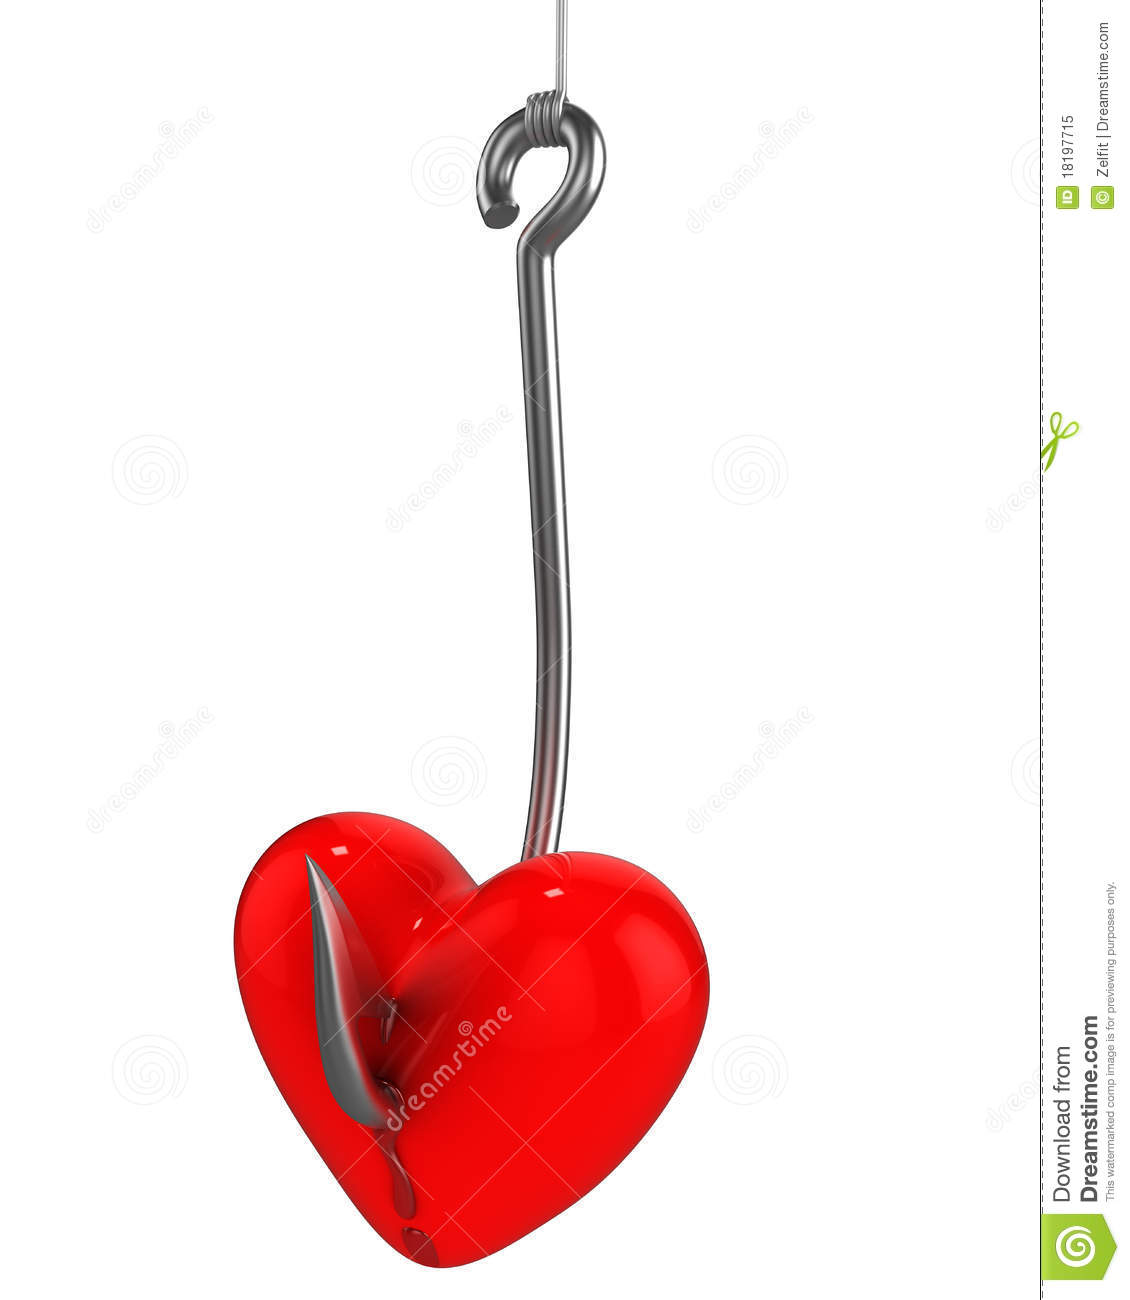 Fishing hook heart clipart clipart panda free clipart for Pictures of fishing hooks